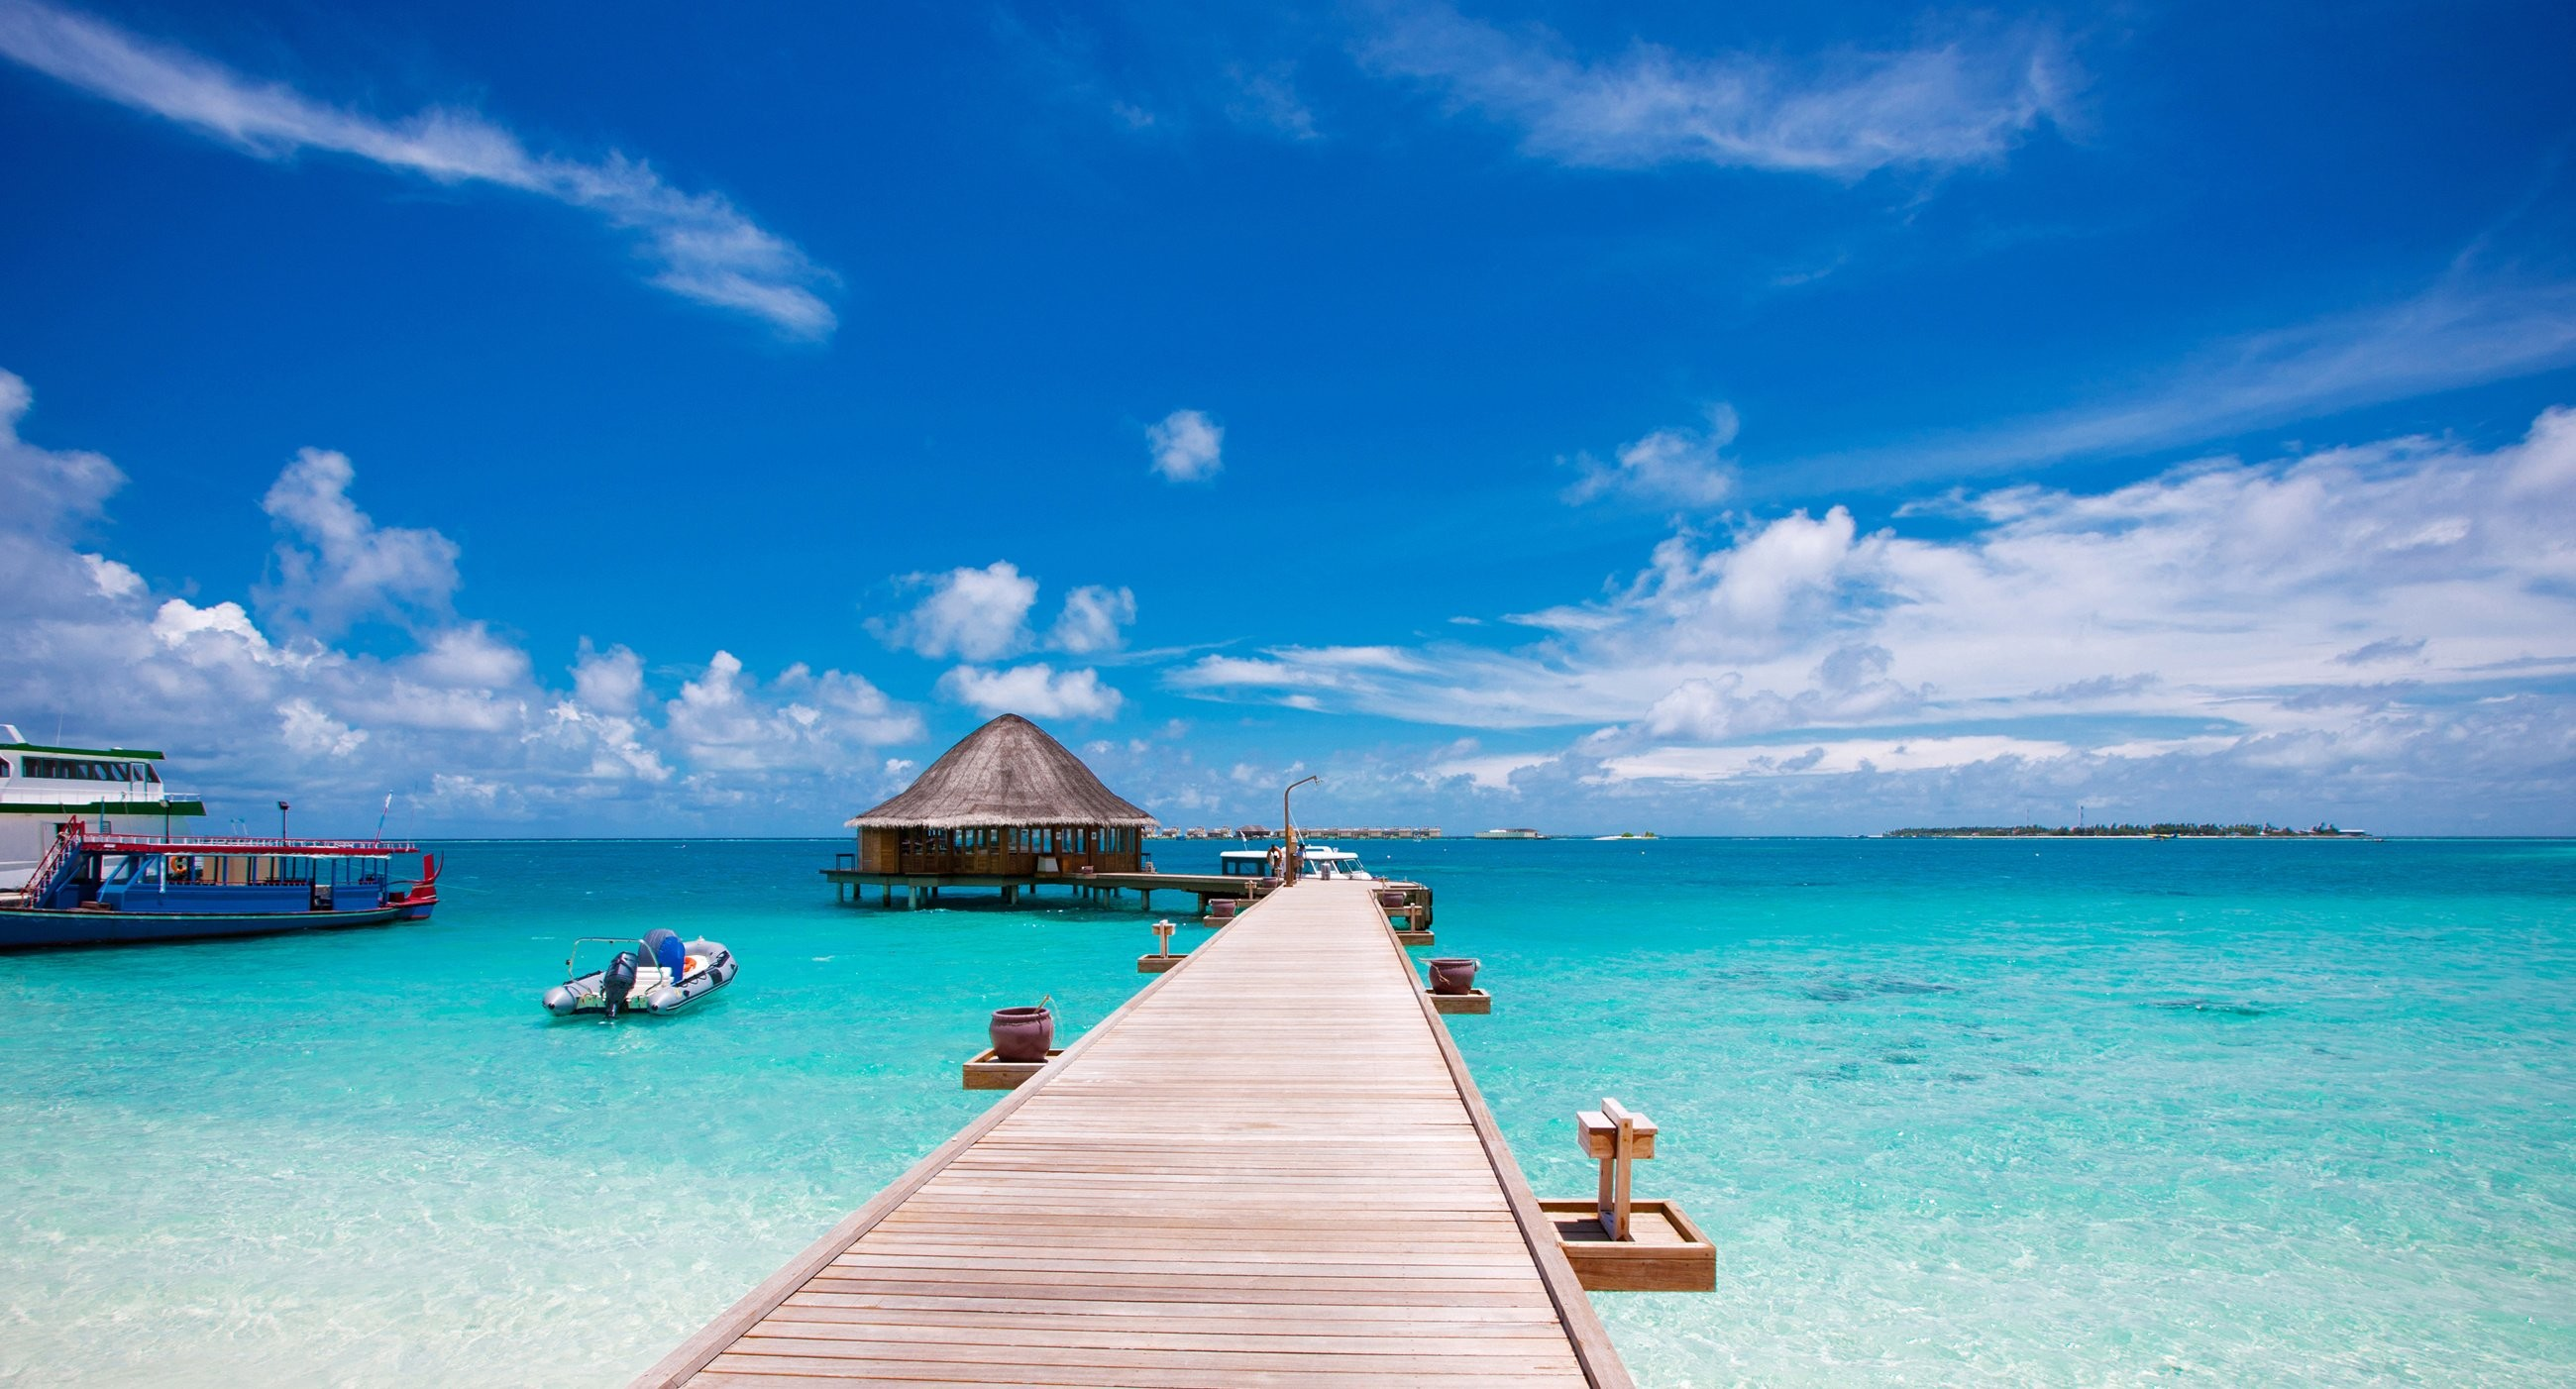 Travel-summer-holidays-beaches-wallpapers-HD